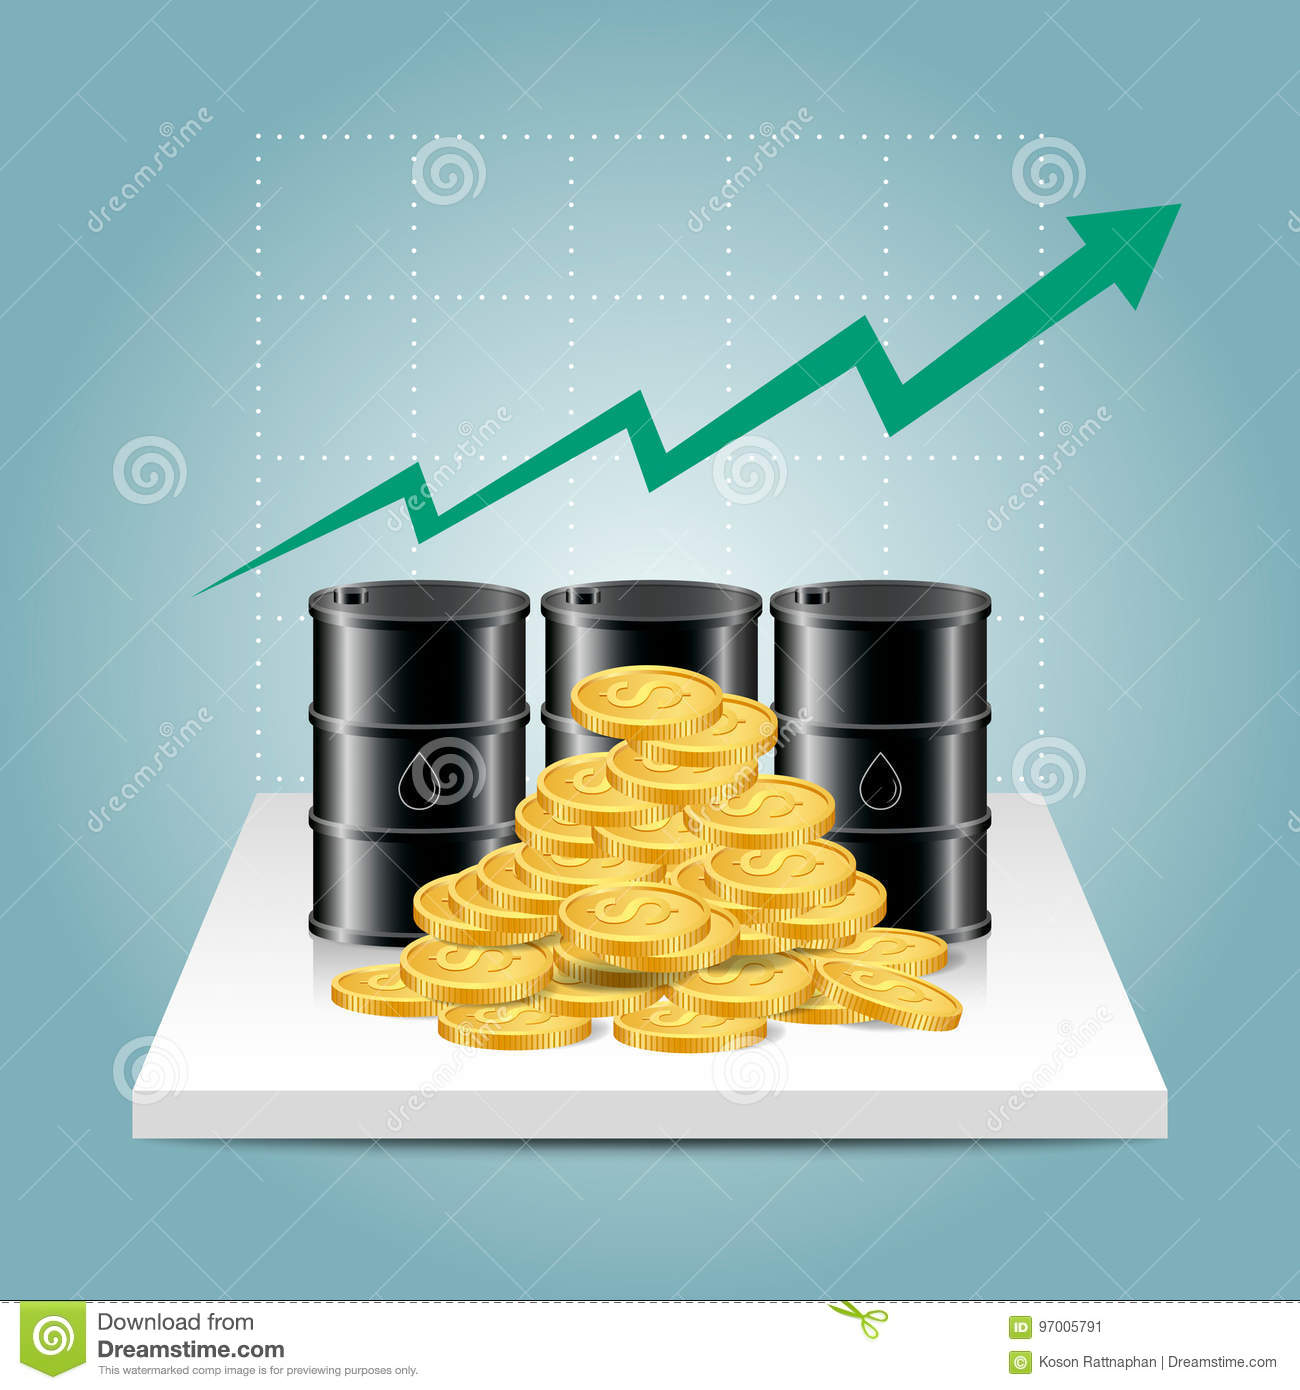 Oil Stock Quote: Oil Industry Concept. Oil Price Growing Up Graph With Oil